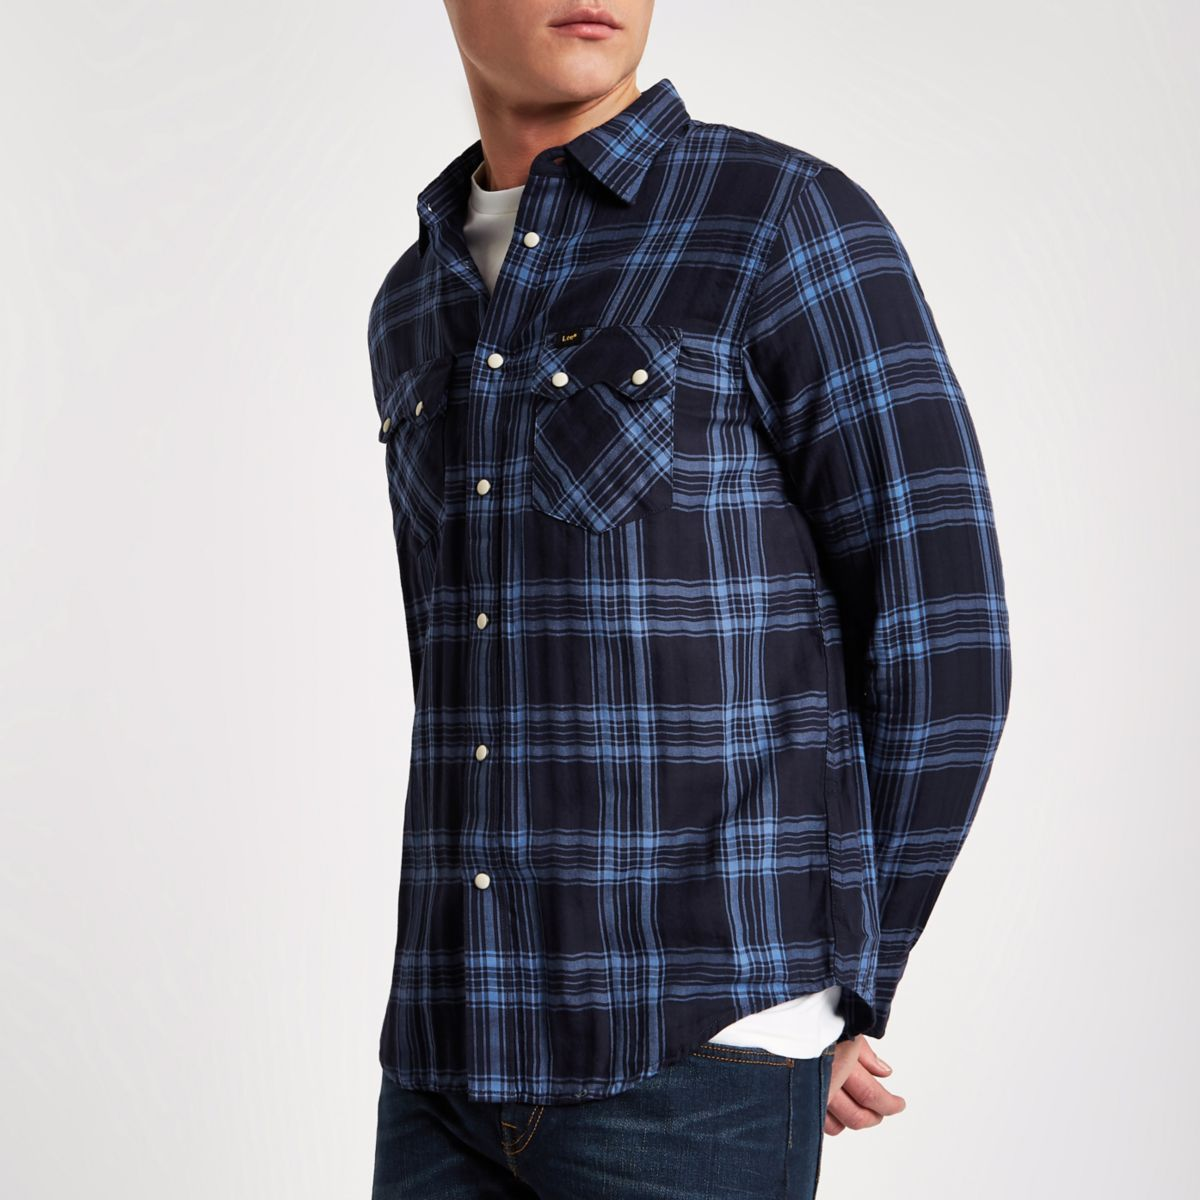 Find a Women's Blue Plaid Shirt, Men's Blue Plaid Shirt, and more at Macy's. Macy's Presents: The Edit - A curated mix of fashion and inspiration Check It Out .